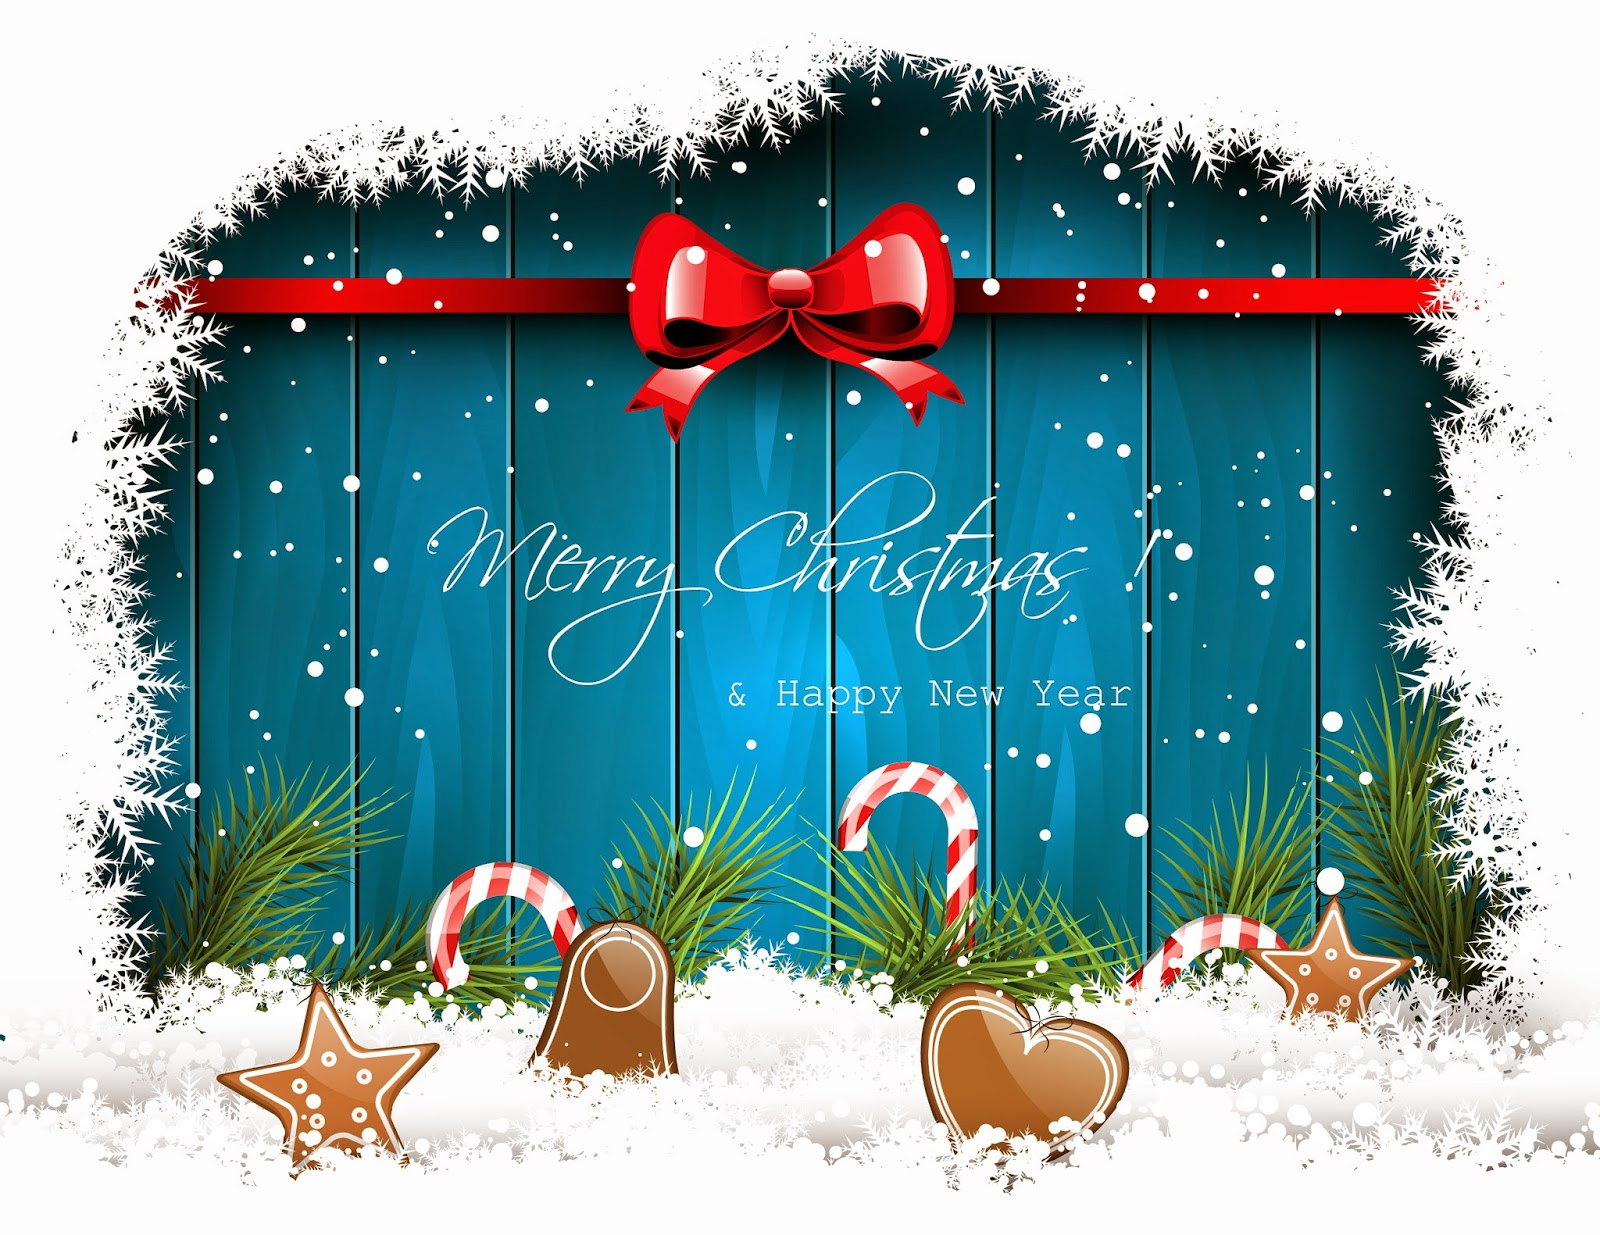 I wish you a merry christmas and a happy new year greetings images wish merry christmas happy new year winter theme kristyandbryce Images